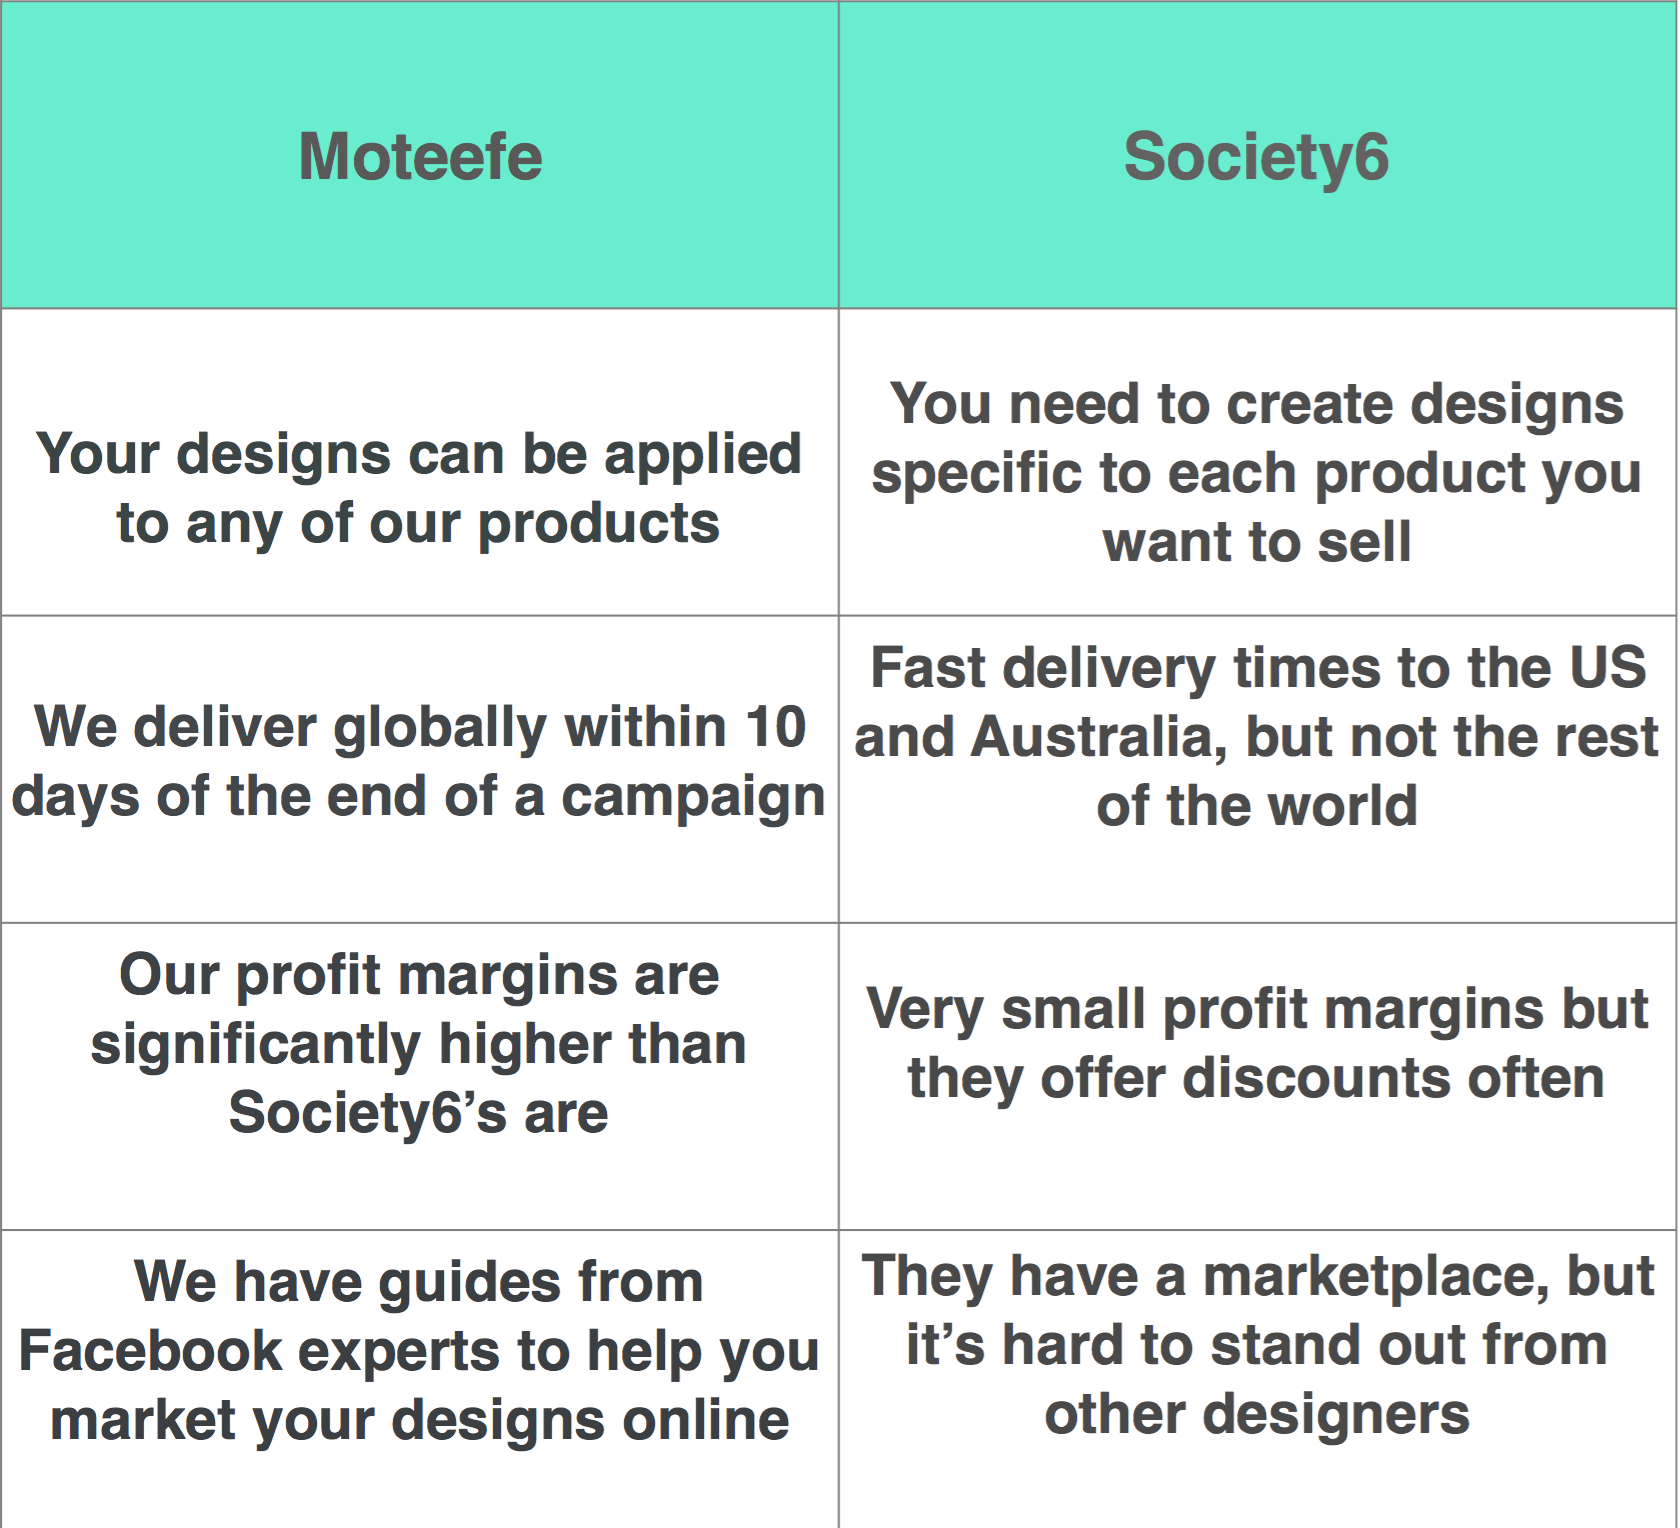 Moteefe vs Society6 which is better